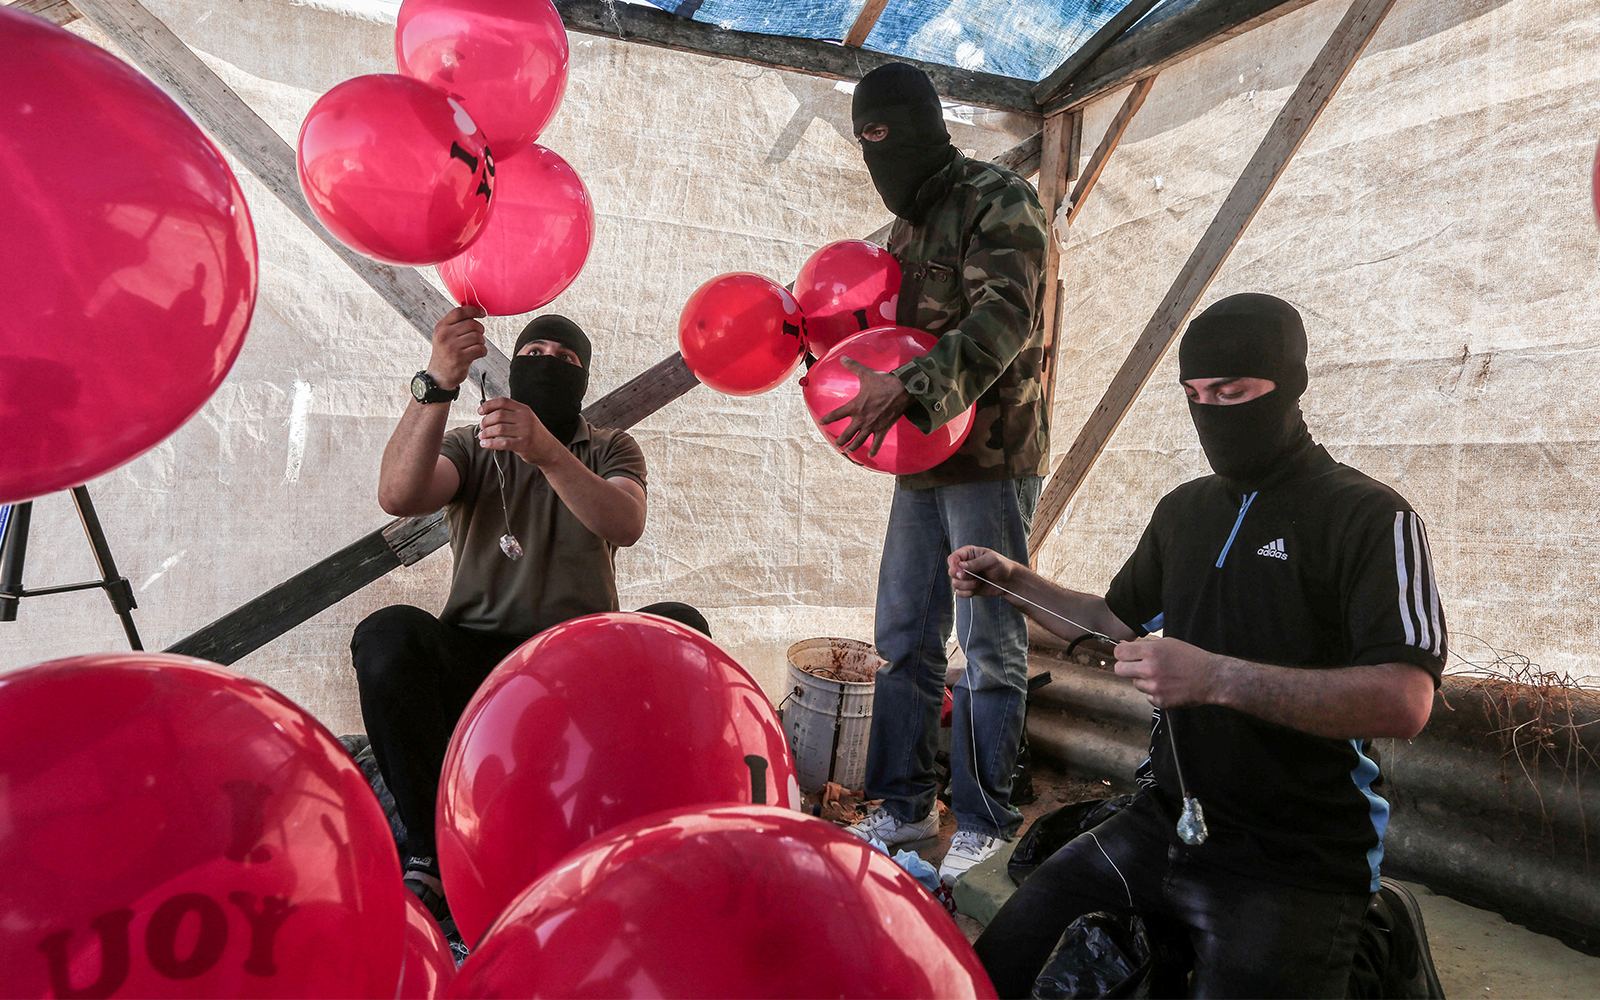 Hamas official threatens more explosive balloons into Israel   The Times of  Israel